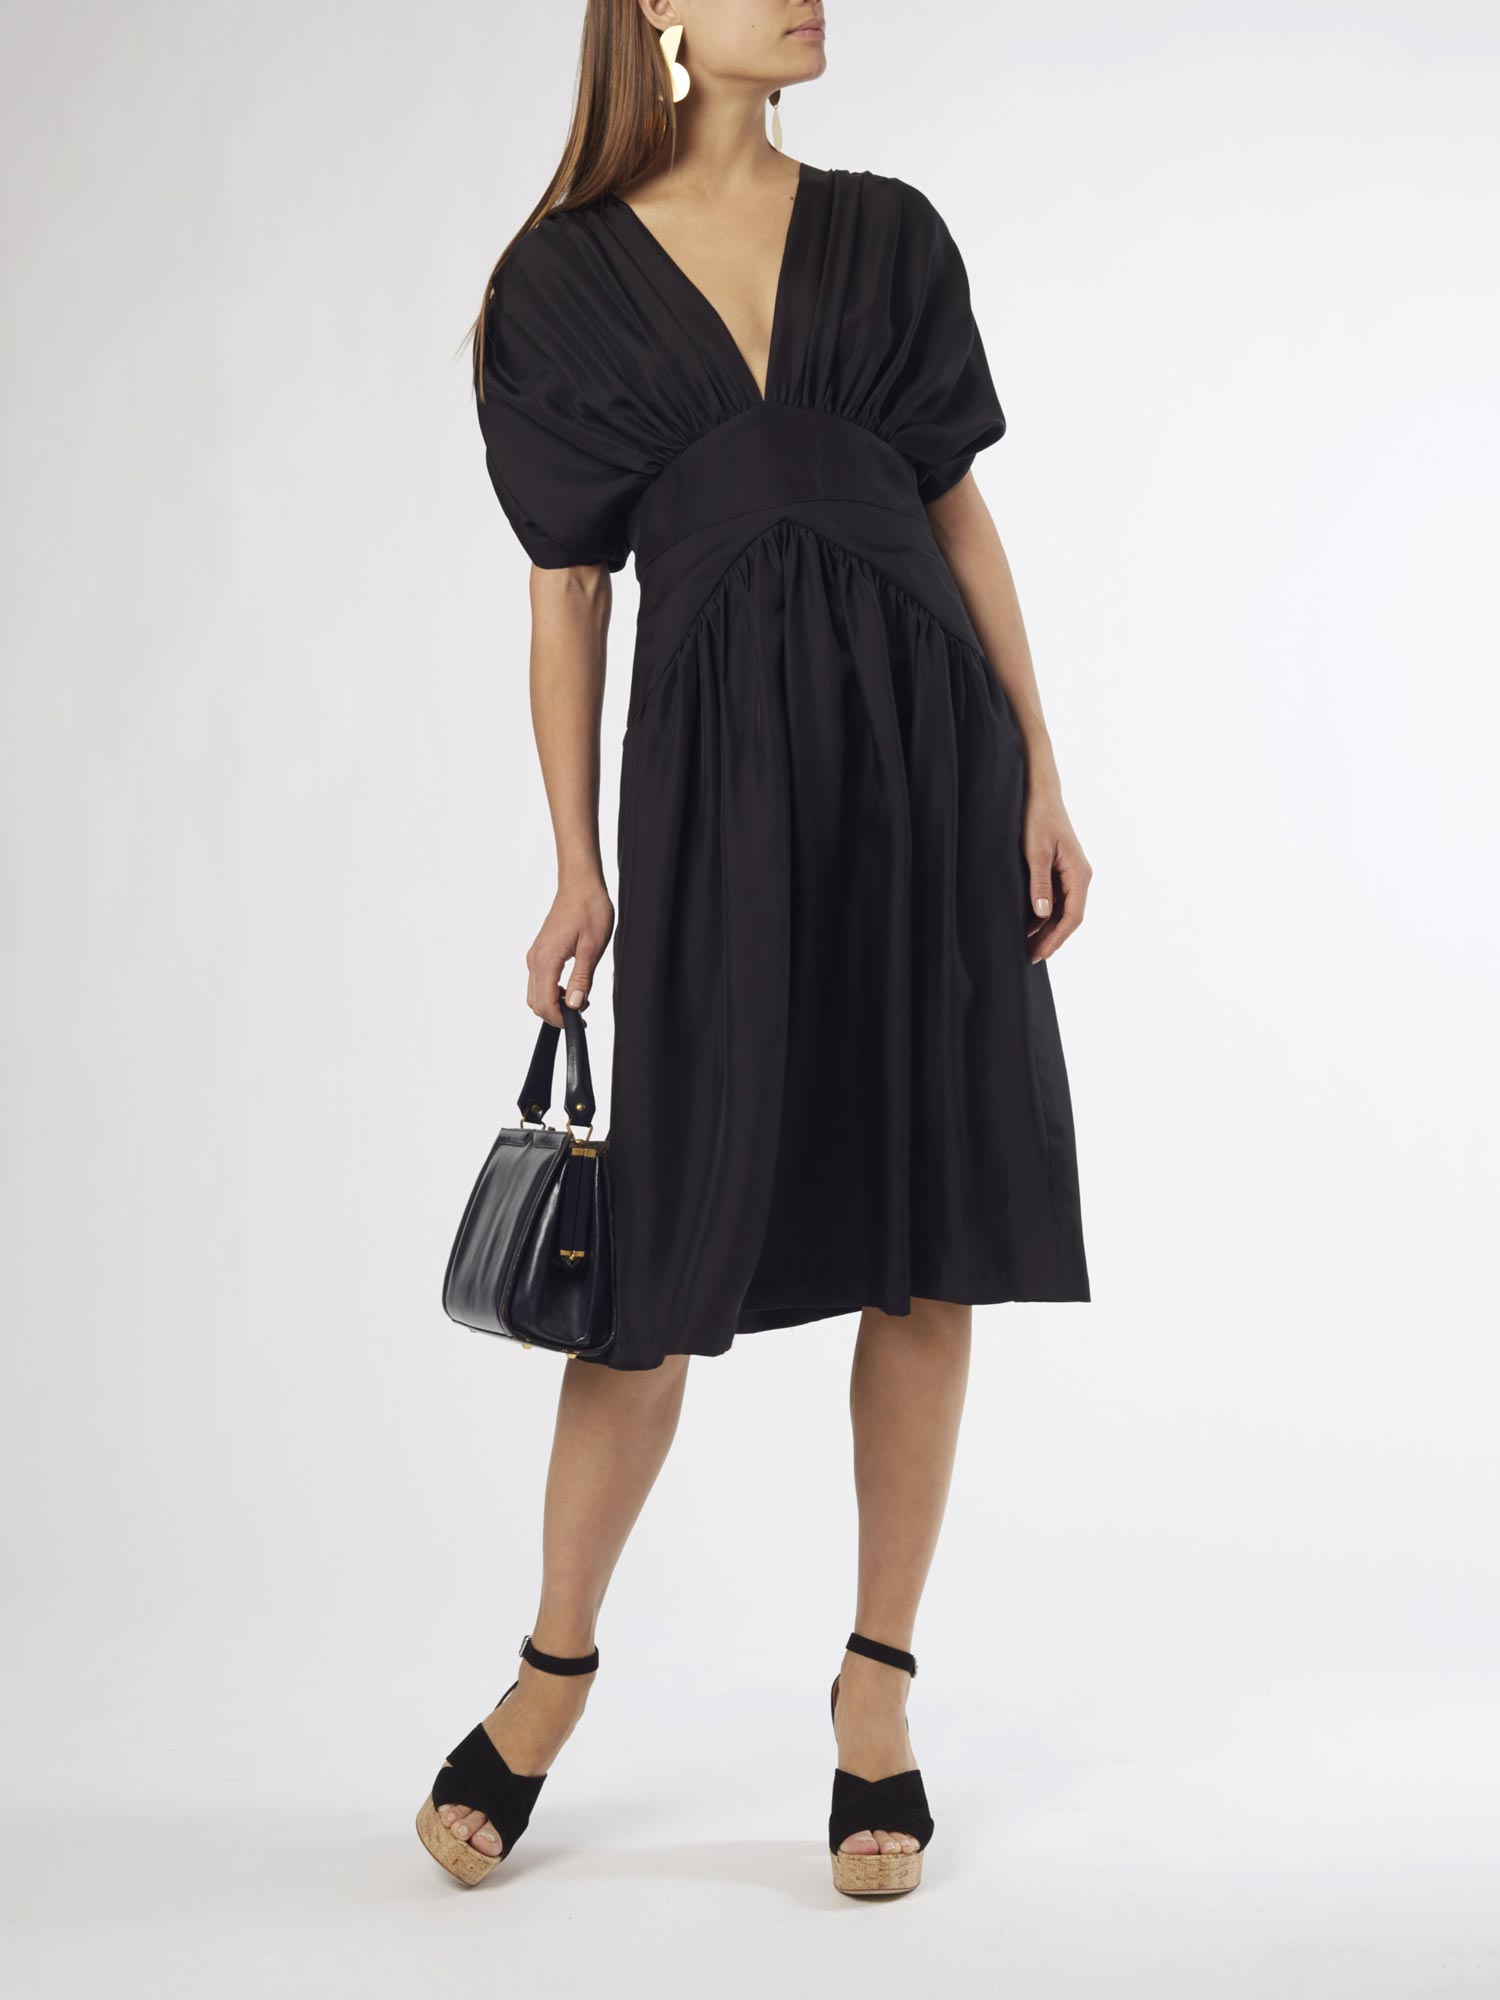 Black Midi Dress | Silk Twill